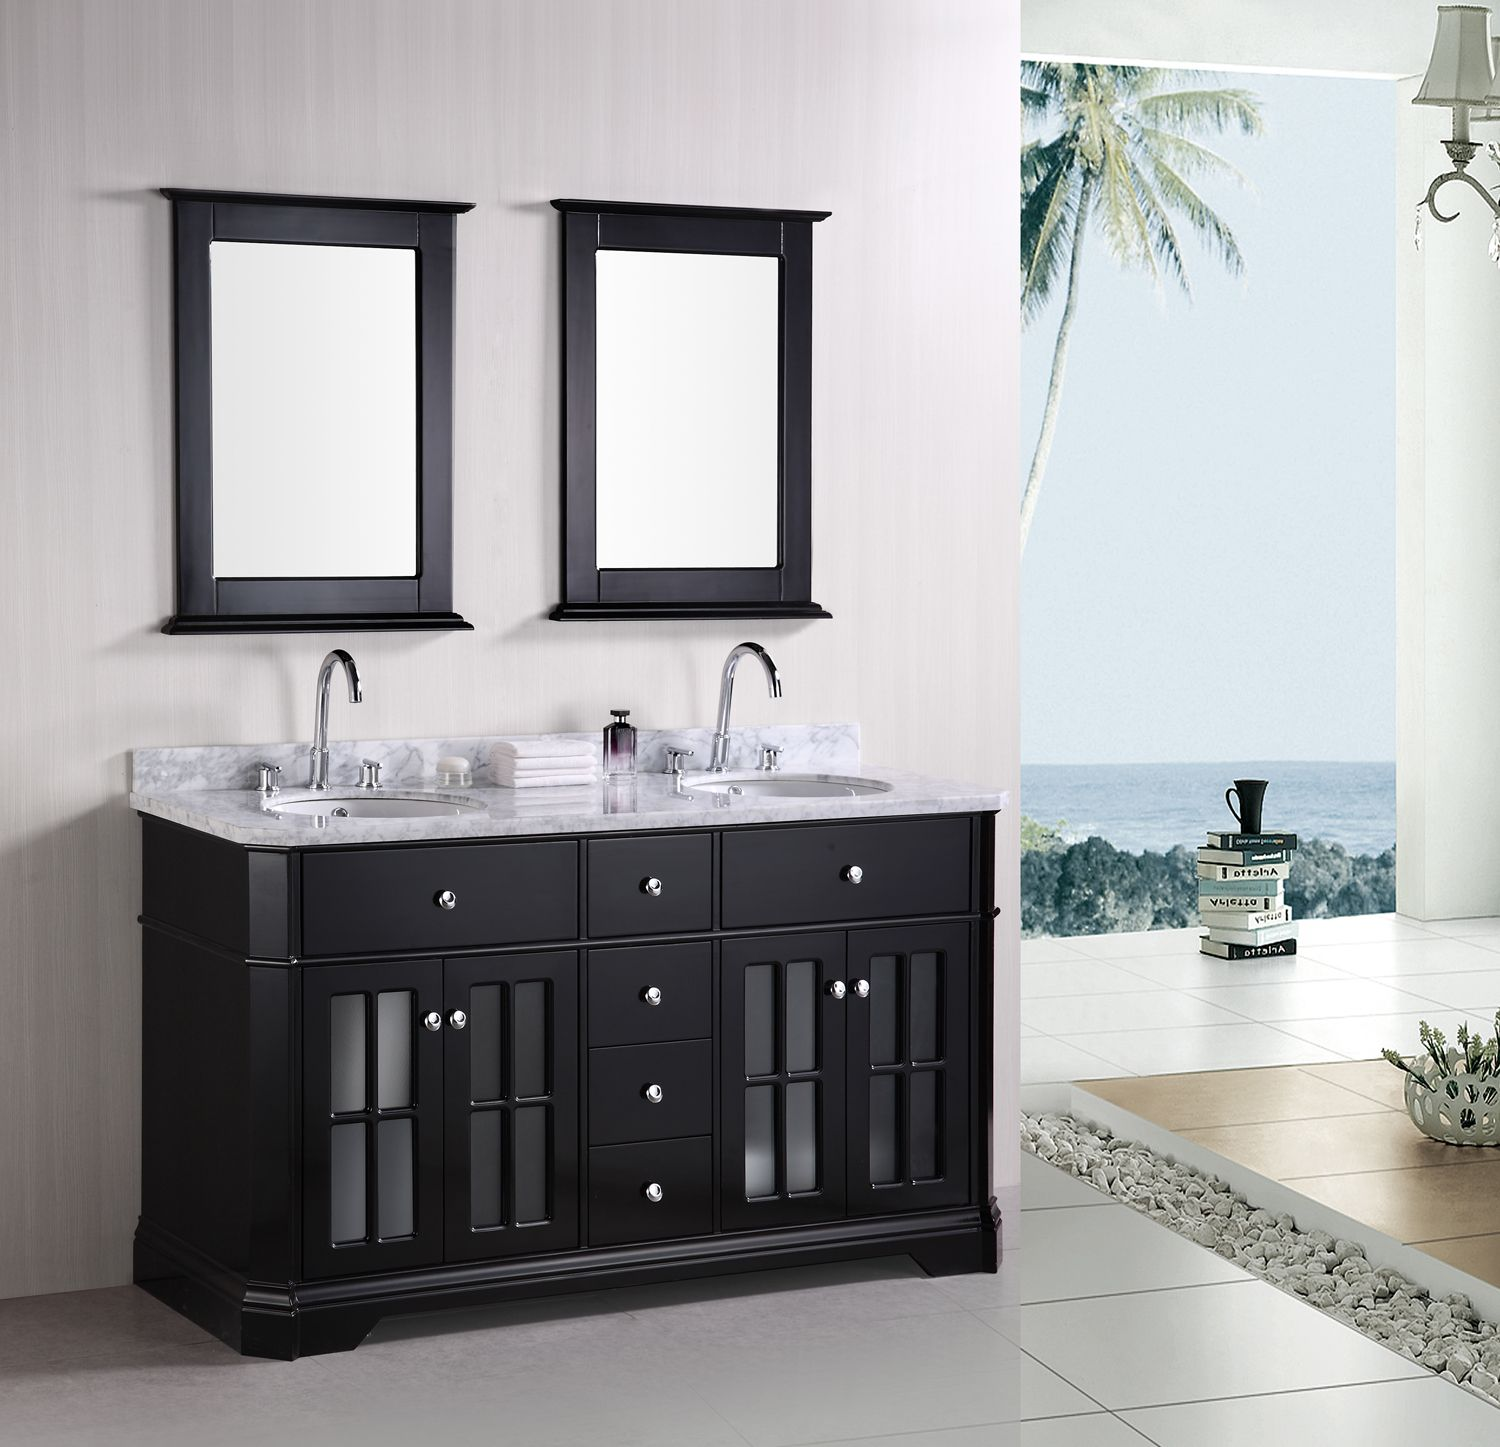 Double Bathroom Vanities Imperial 60 Sink Vanity Set Listvanities